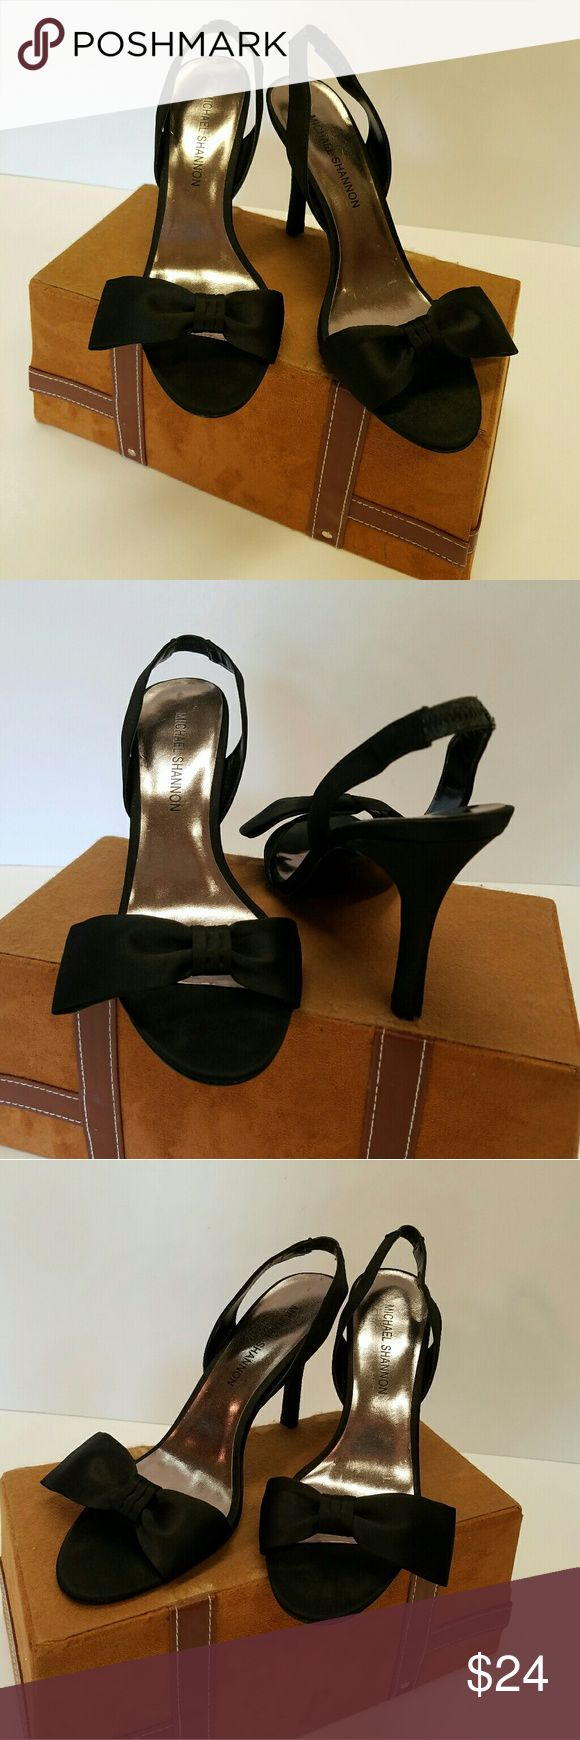 SEXY BLACK SLINGBACK  HEELS I usually shoot in 24 to 48 hours.  Great Shoes designed by Michael  Shannon.  Size 9.50 Medium.  Fabric upper.  Leather soles.  Heel height is 4.00 inches. Worn lightly.  Very Good Condition. Michael Shannon Shoes Heels